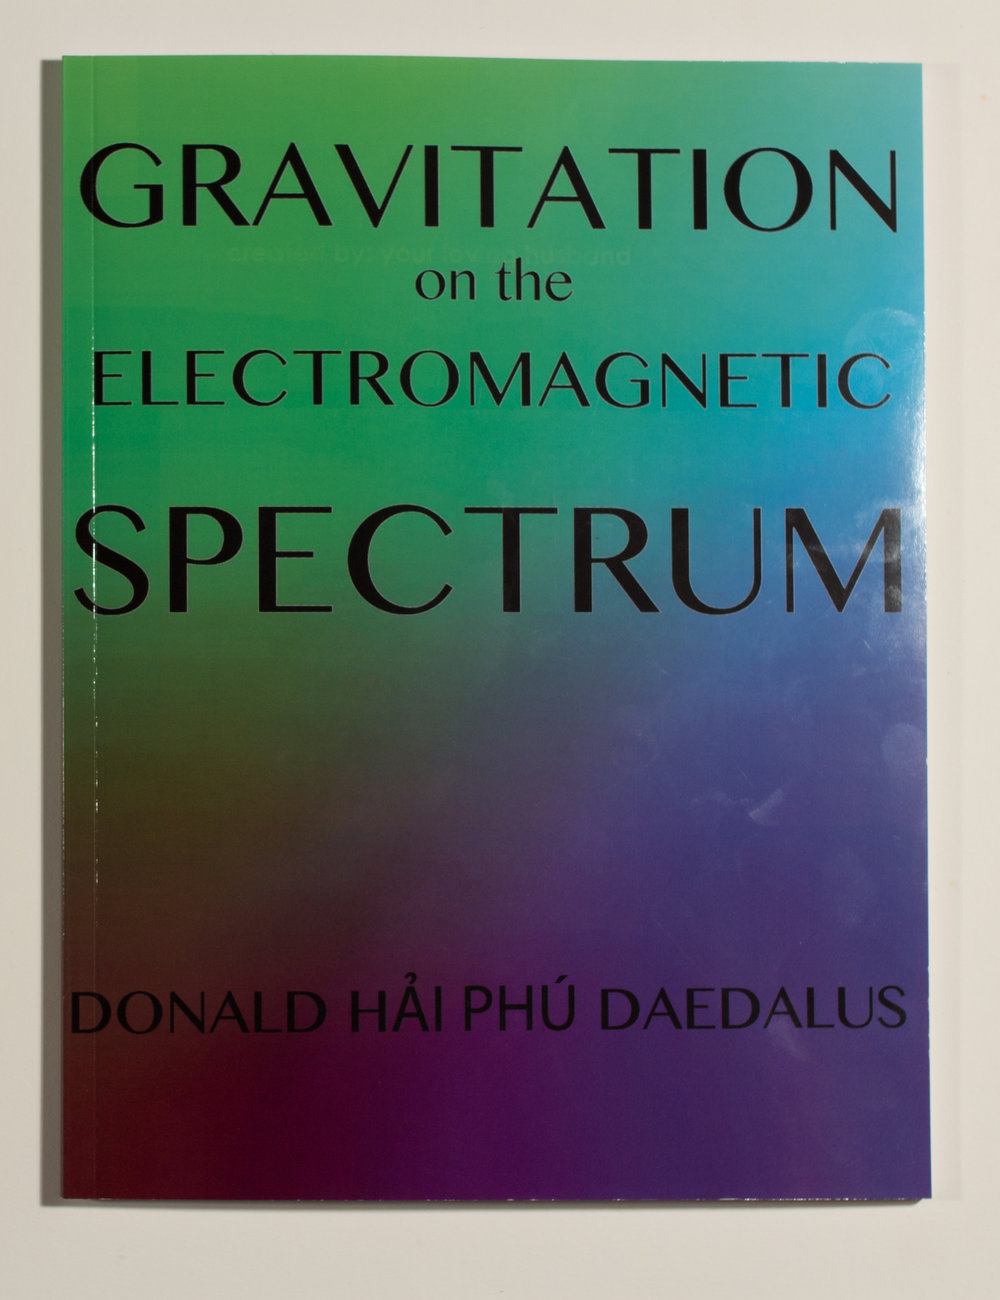 gravitationOnTheElectromagneticSpectrumPrint_001.jpg